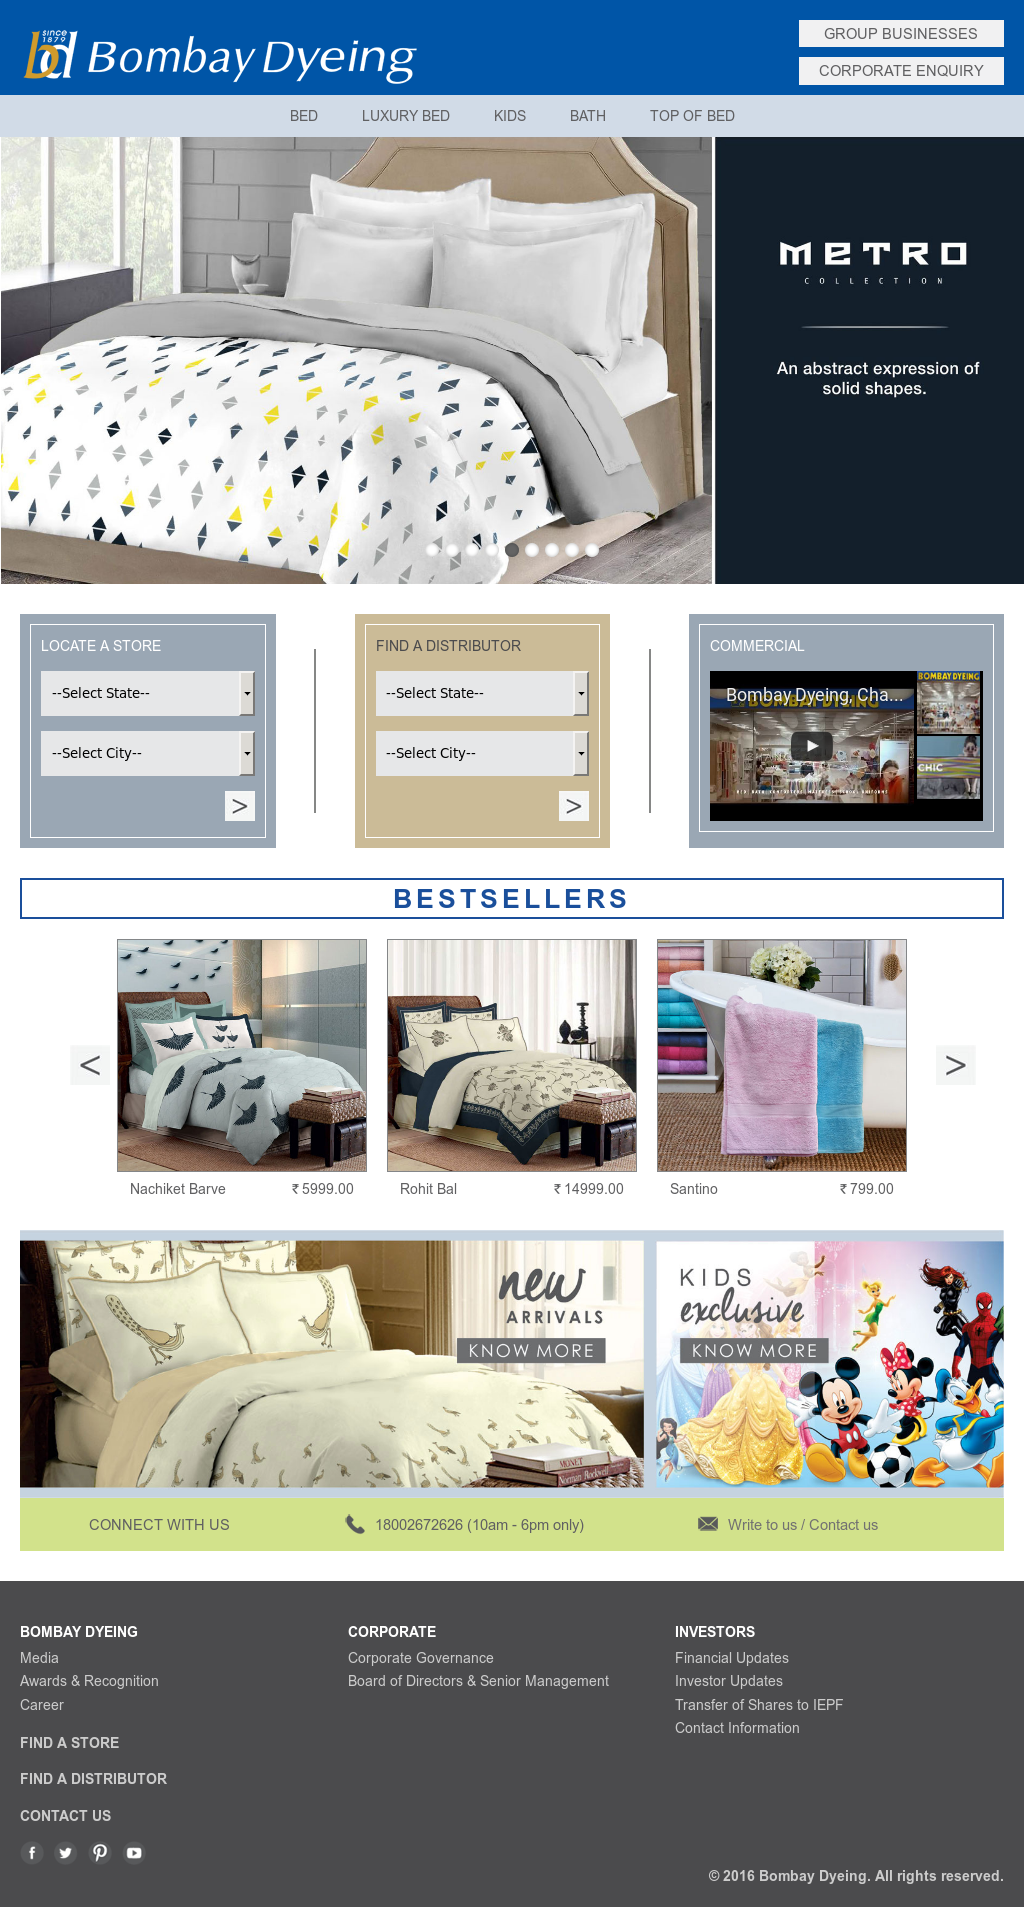 Analytical New Girl In The City Double Bed Quilt/doona Cover Commodities Are Available Without Restriction Quilts, Bedspreads & Coverlets Bedding